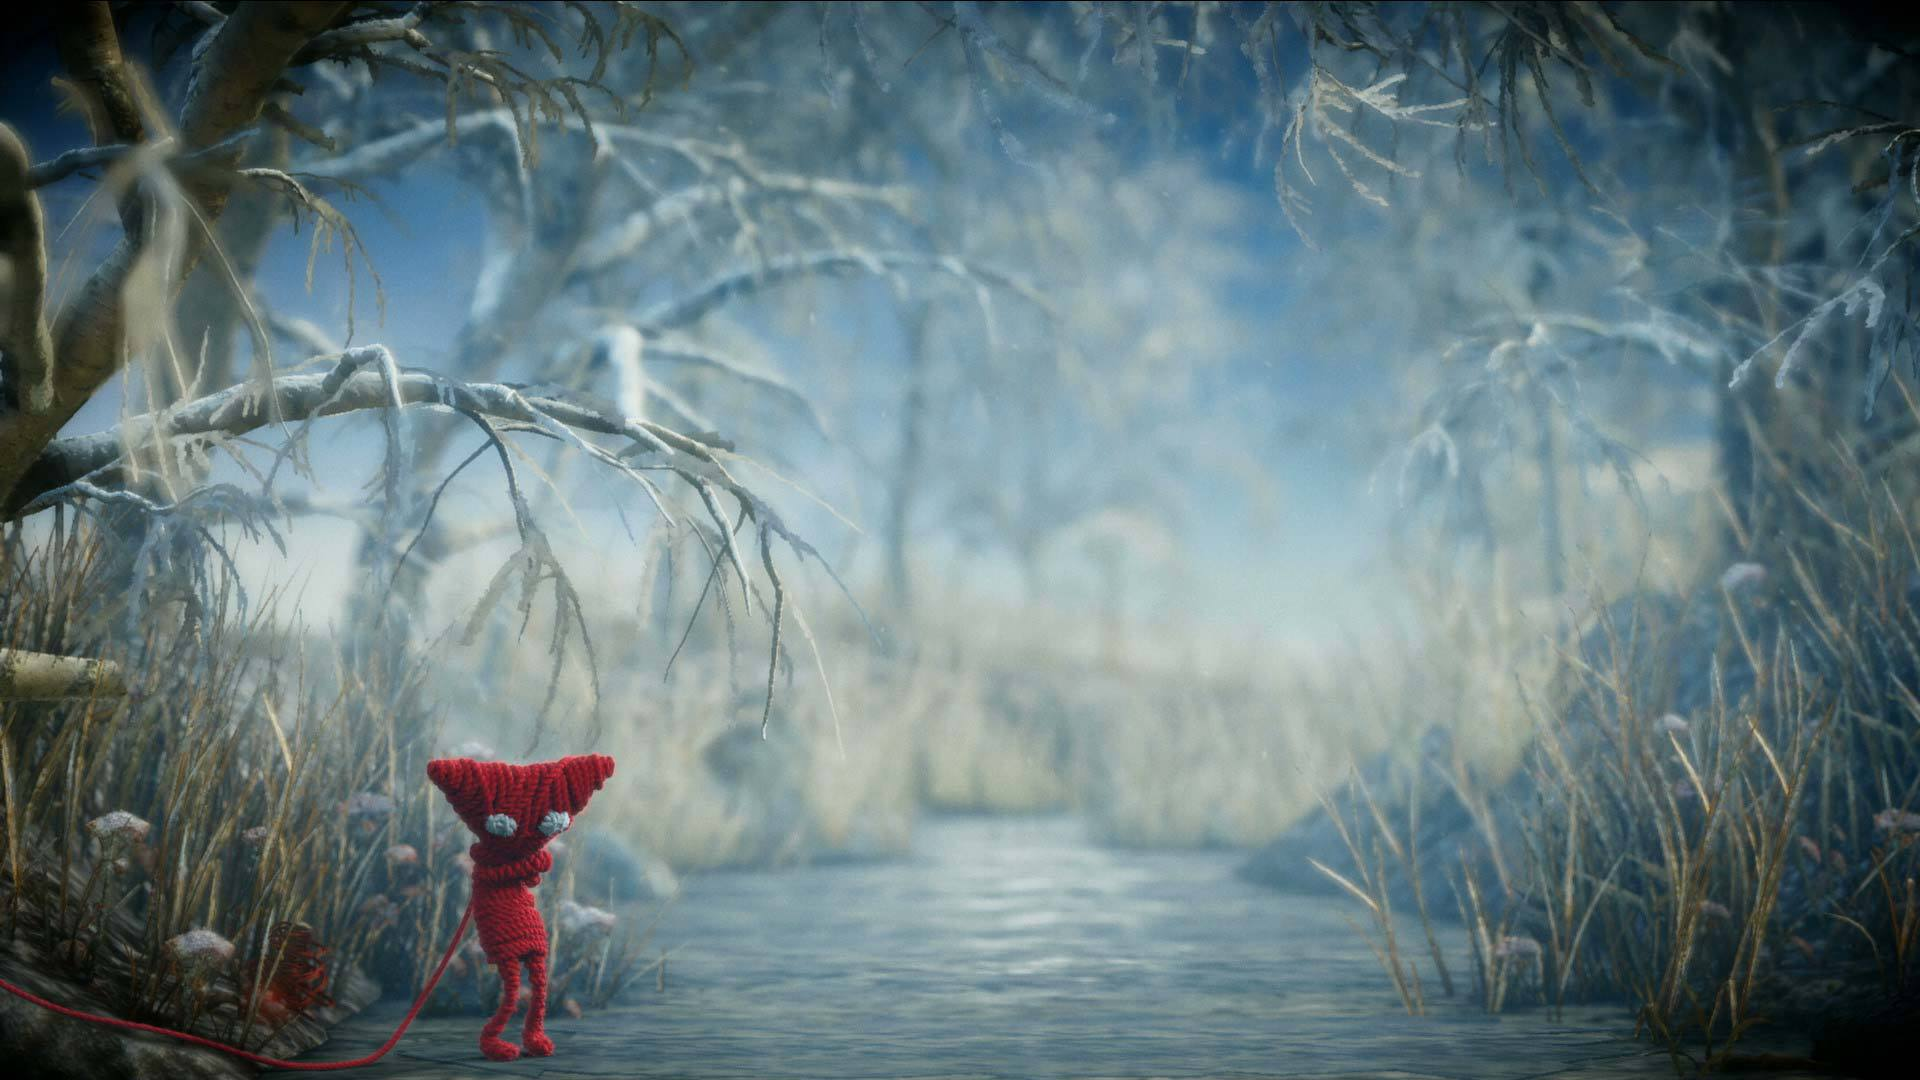 Unravel Wallpaper, Games: Unravel, Best Game, game, quest, arcade 1920x1080